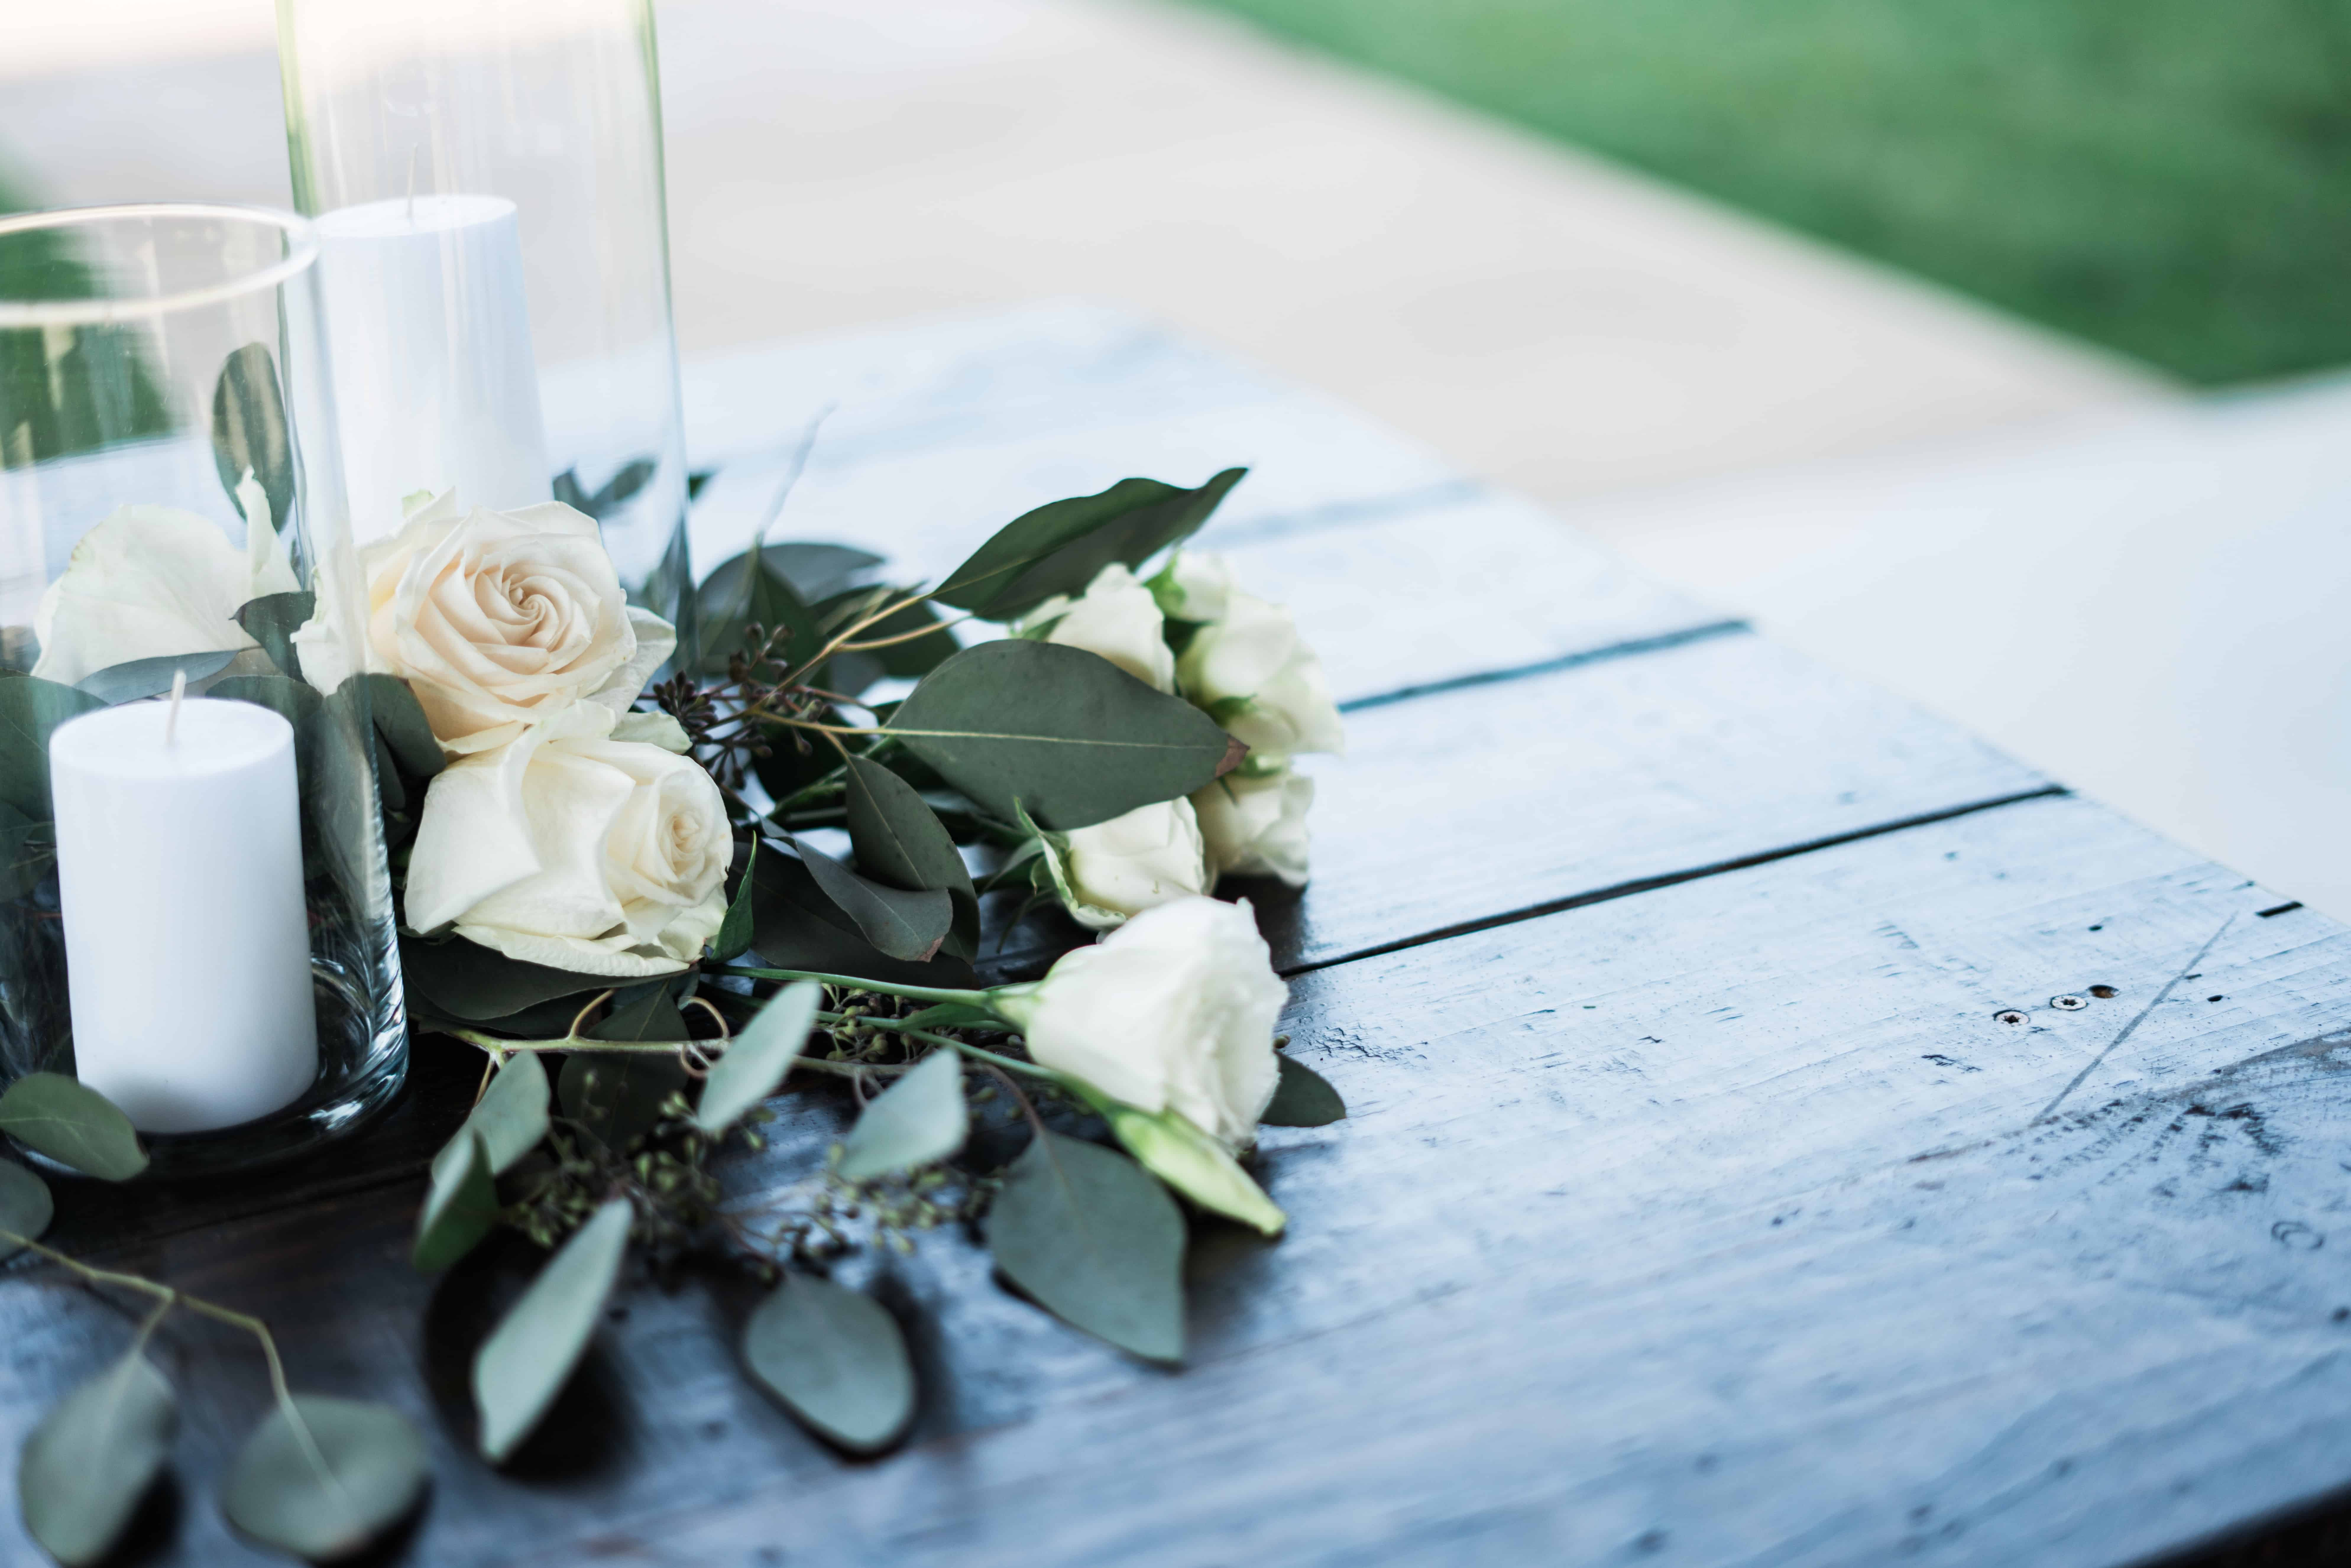 White rose colour meaning